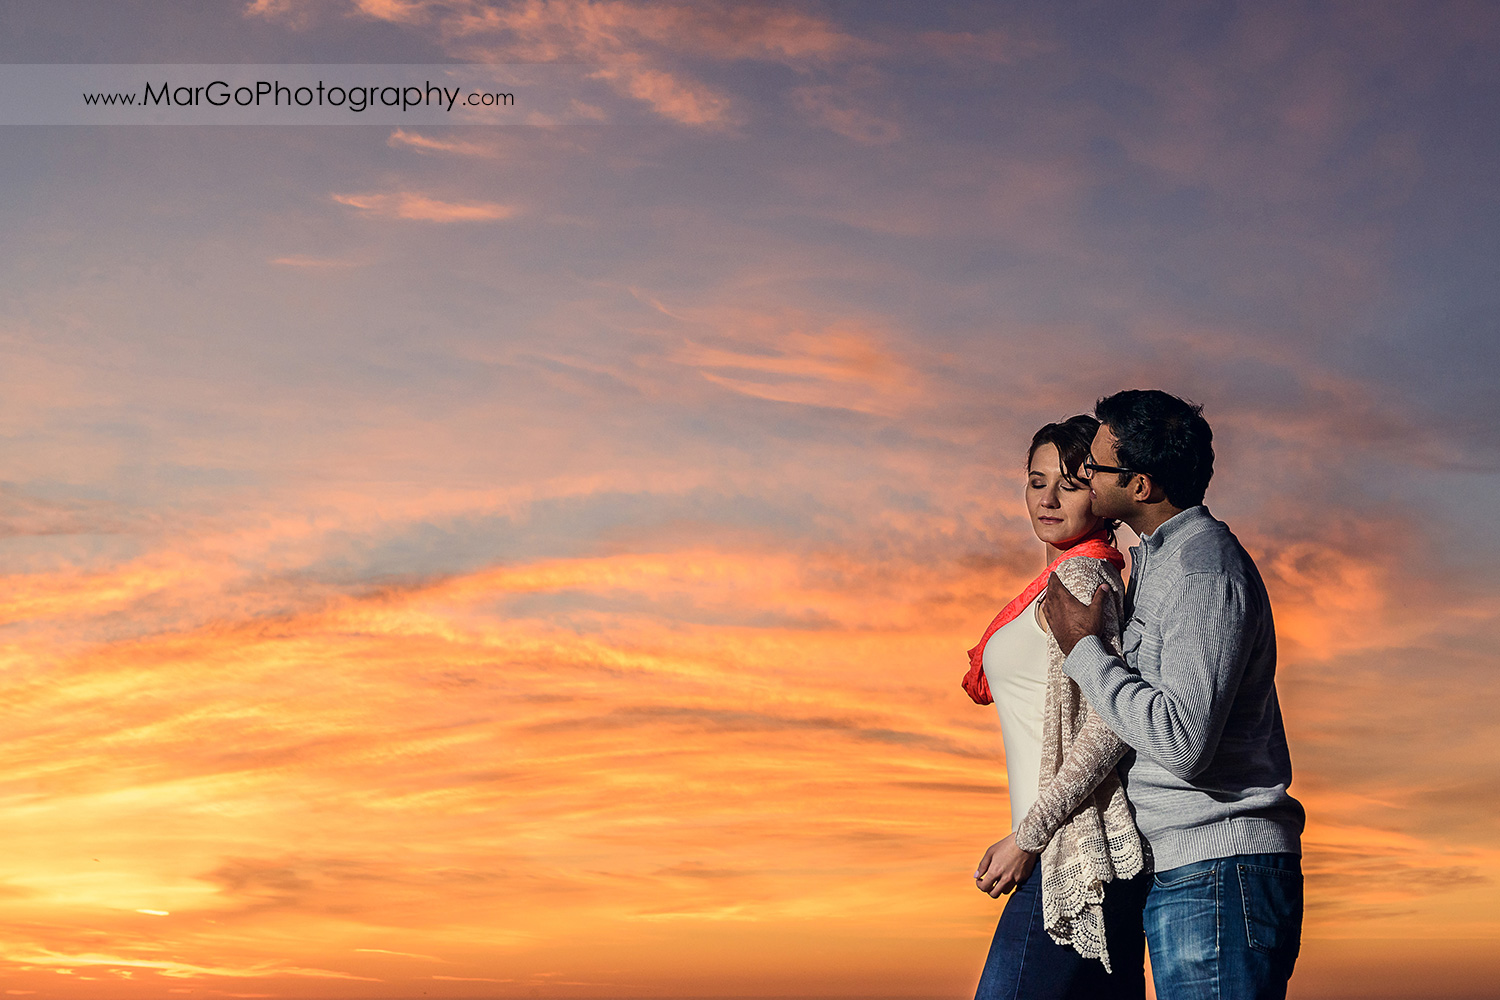 3/4 sunset portrait of man and woman in grey sweater and jeans during engagement session at San Francisco Baker Beach